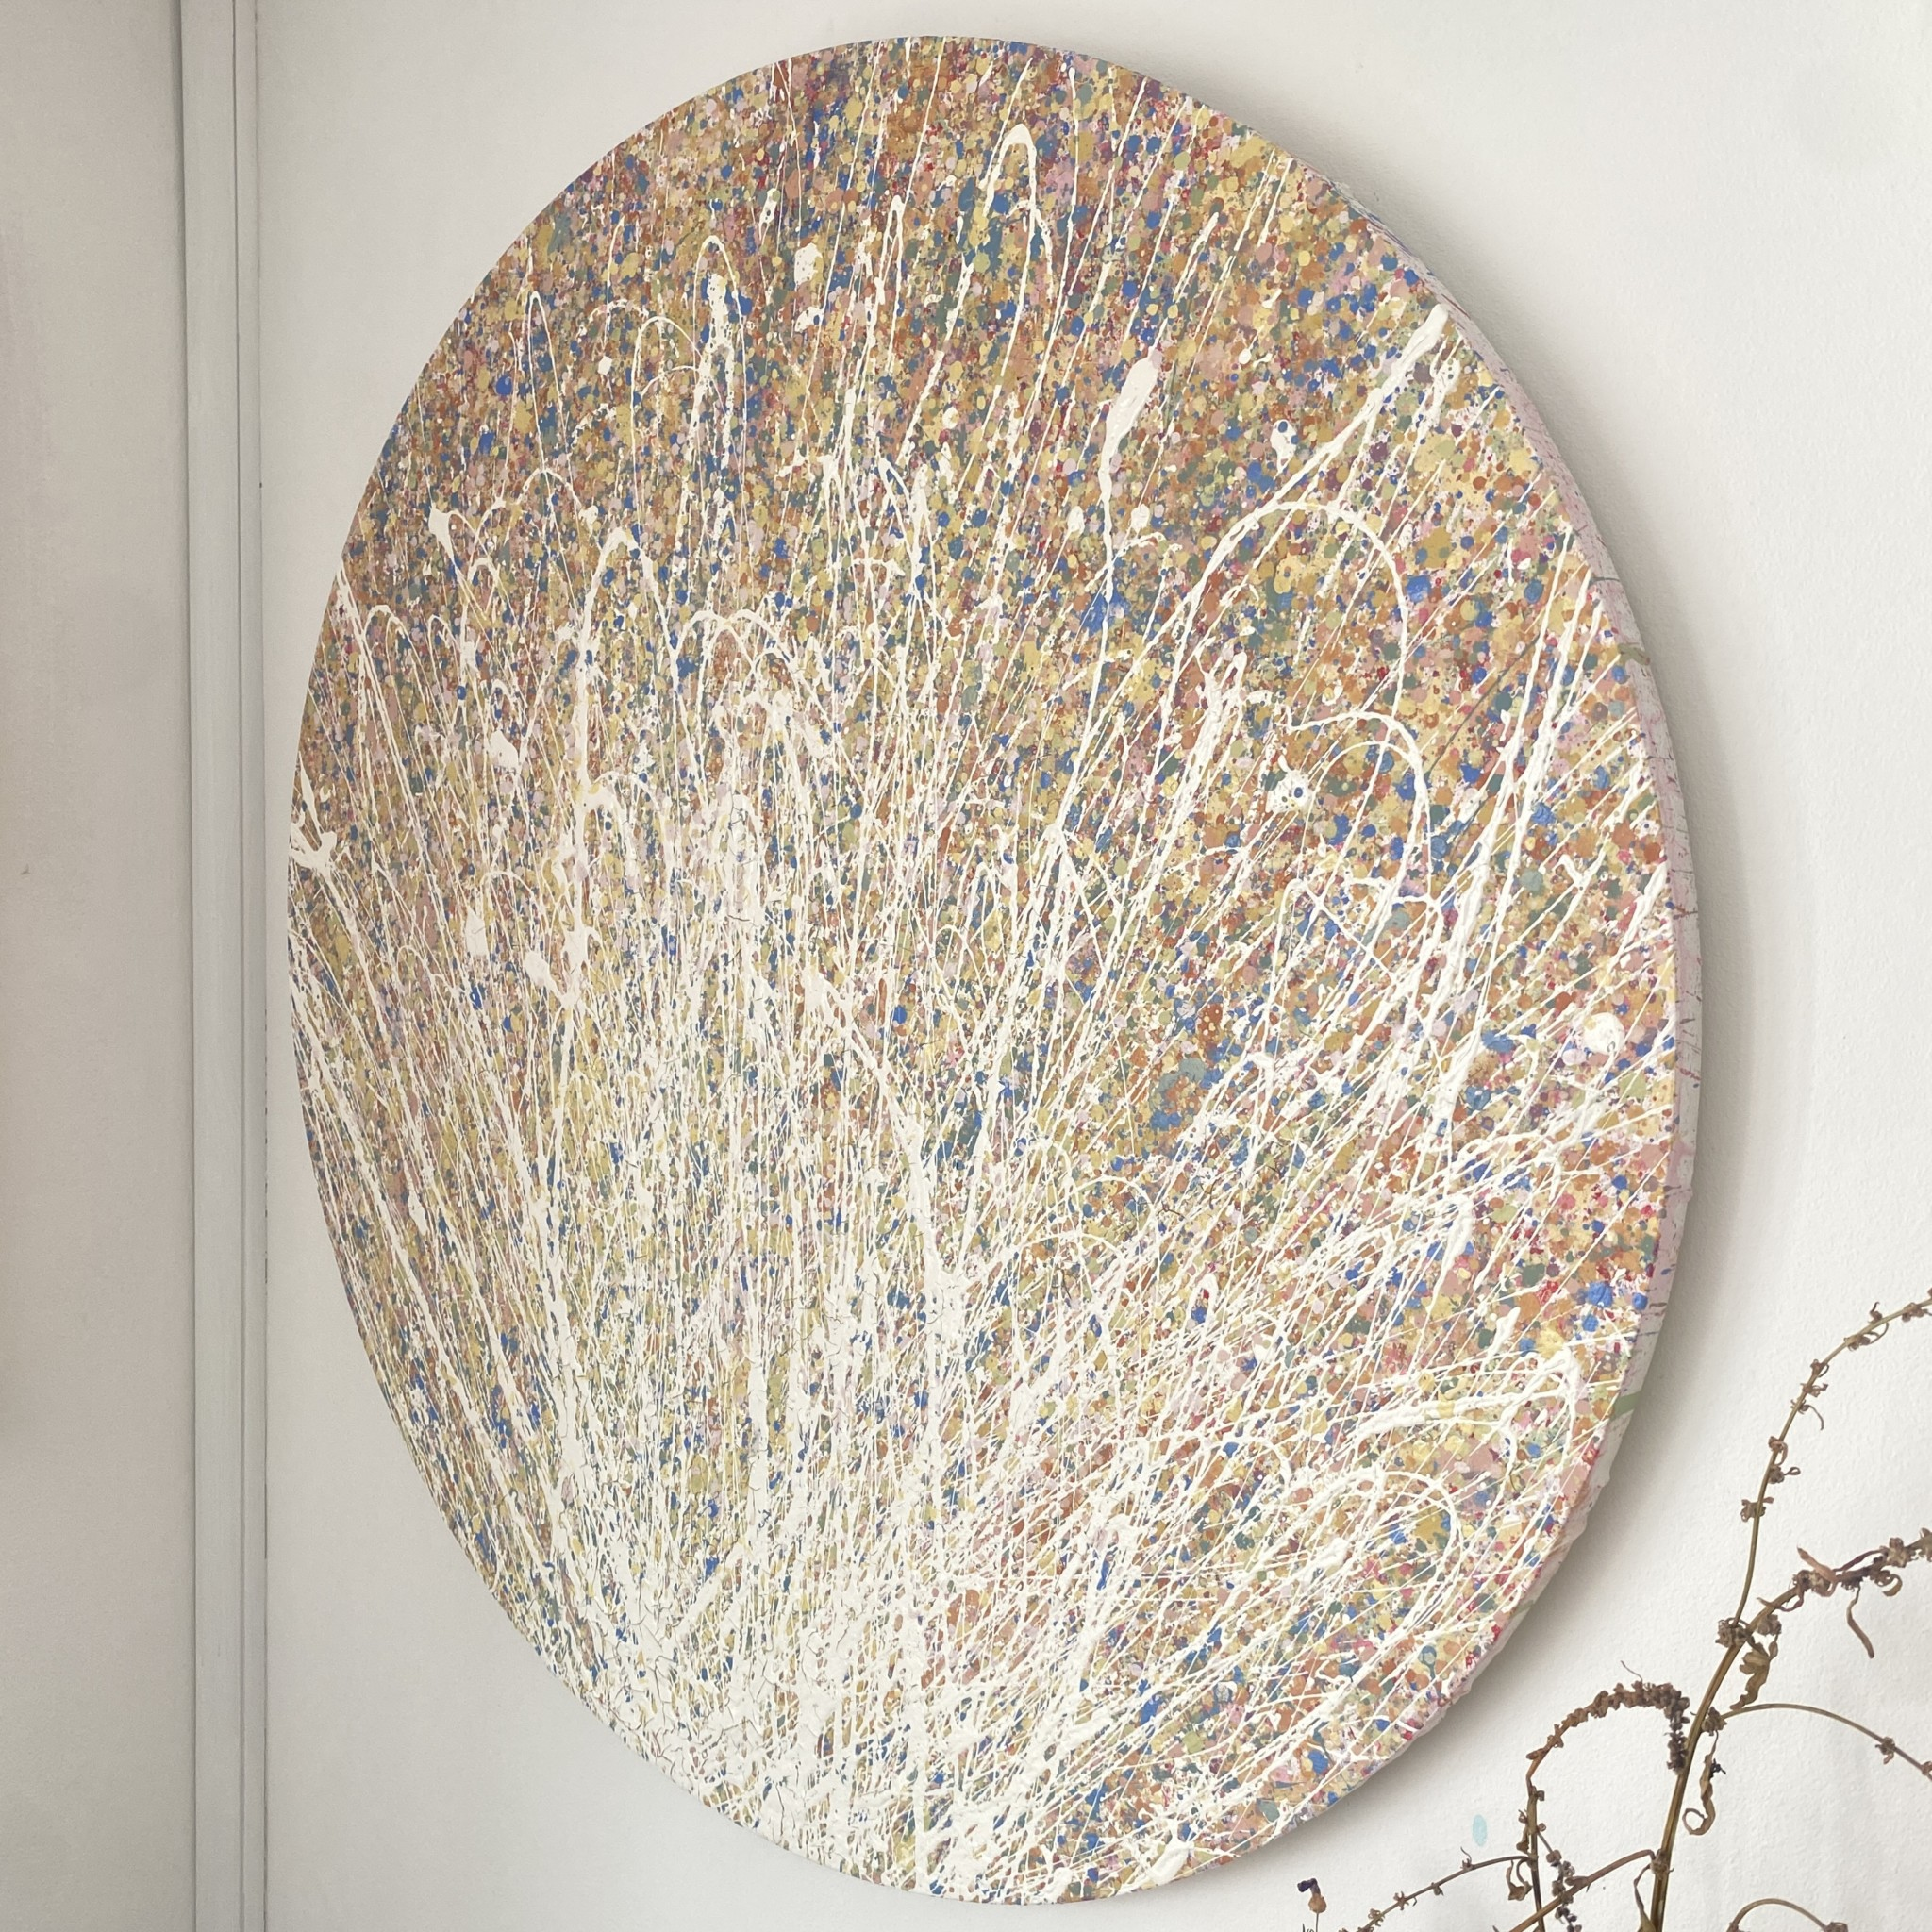 a gallery view of early autumn in somerset by somerset artist emily dduchscherer kirkcreated with environmentally friendly, water based paints which show hints of a glossy sheen this circular artwork is finished a satin varnish that gives a three dimensional affect this round textured abstract painting is made on a cotton canvas measuring 60 centimetres in diameter which is approximately 24 Inches Early Autumn in Somerset was completed in my home studio located in South Somerset September 2021